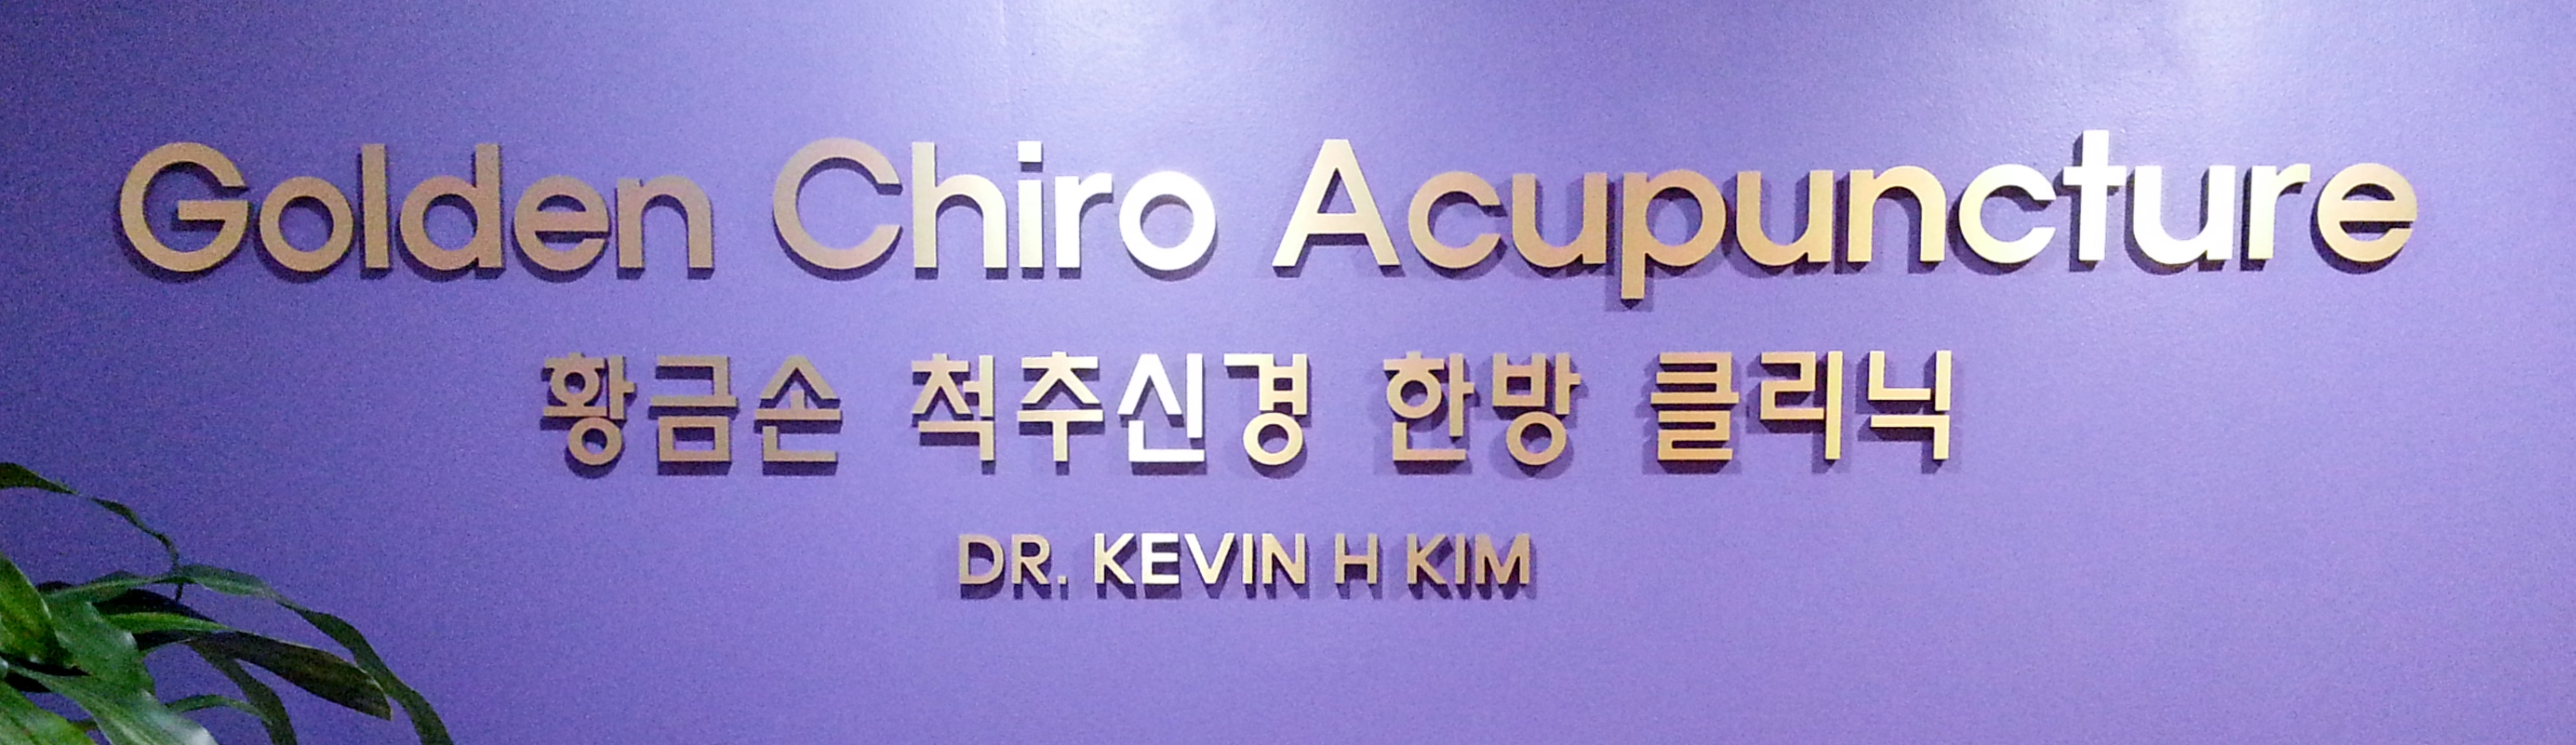 Chiropractic and Acupuncture Clinic in Northern Virginia